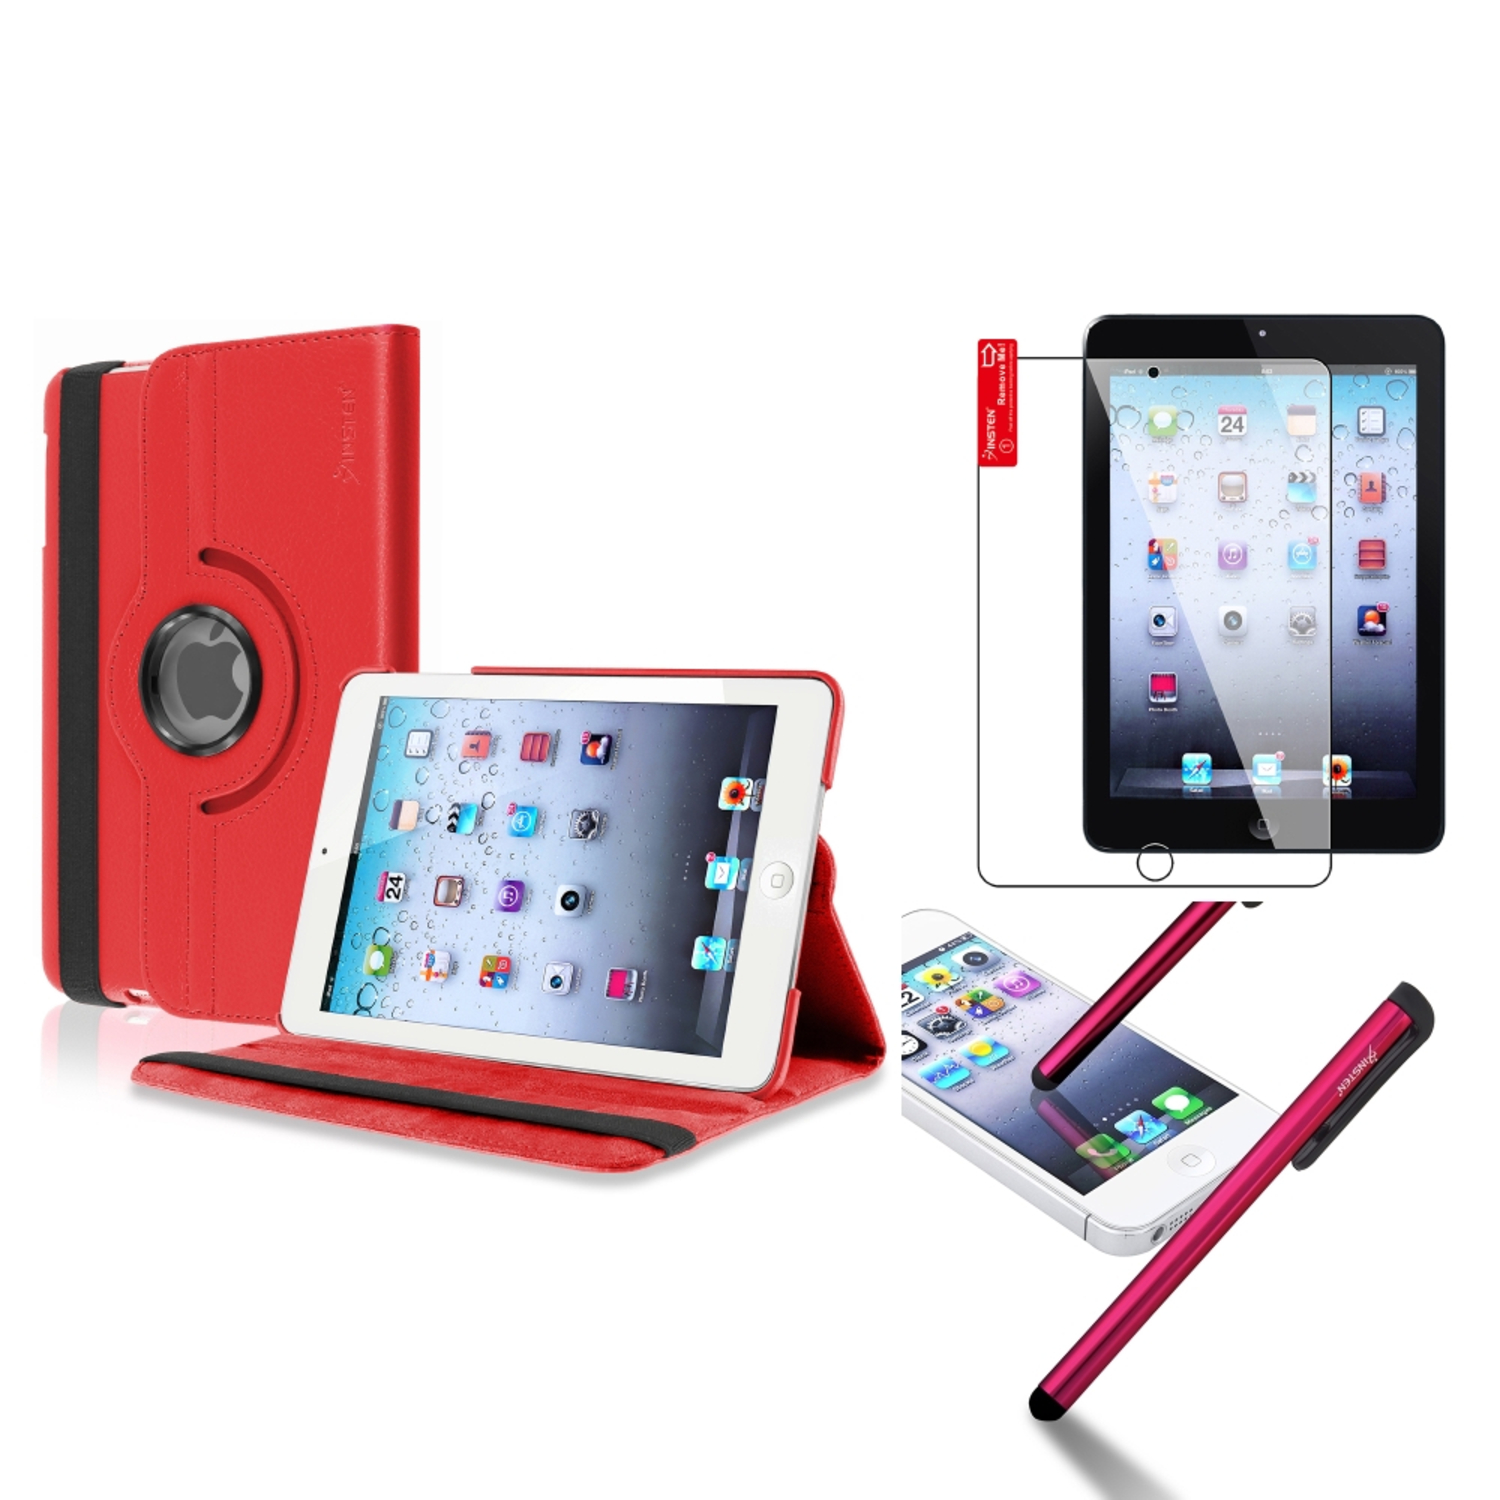 iPad Mini 3/2/1 Case, by Insten For Apple iPad Mini 3rd 3 2nd 1 1st Gen Rotating PU Leather Case Cover Stand Red